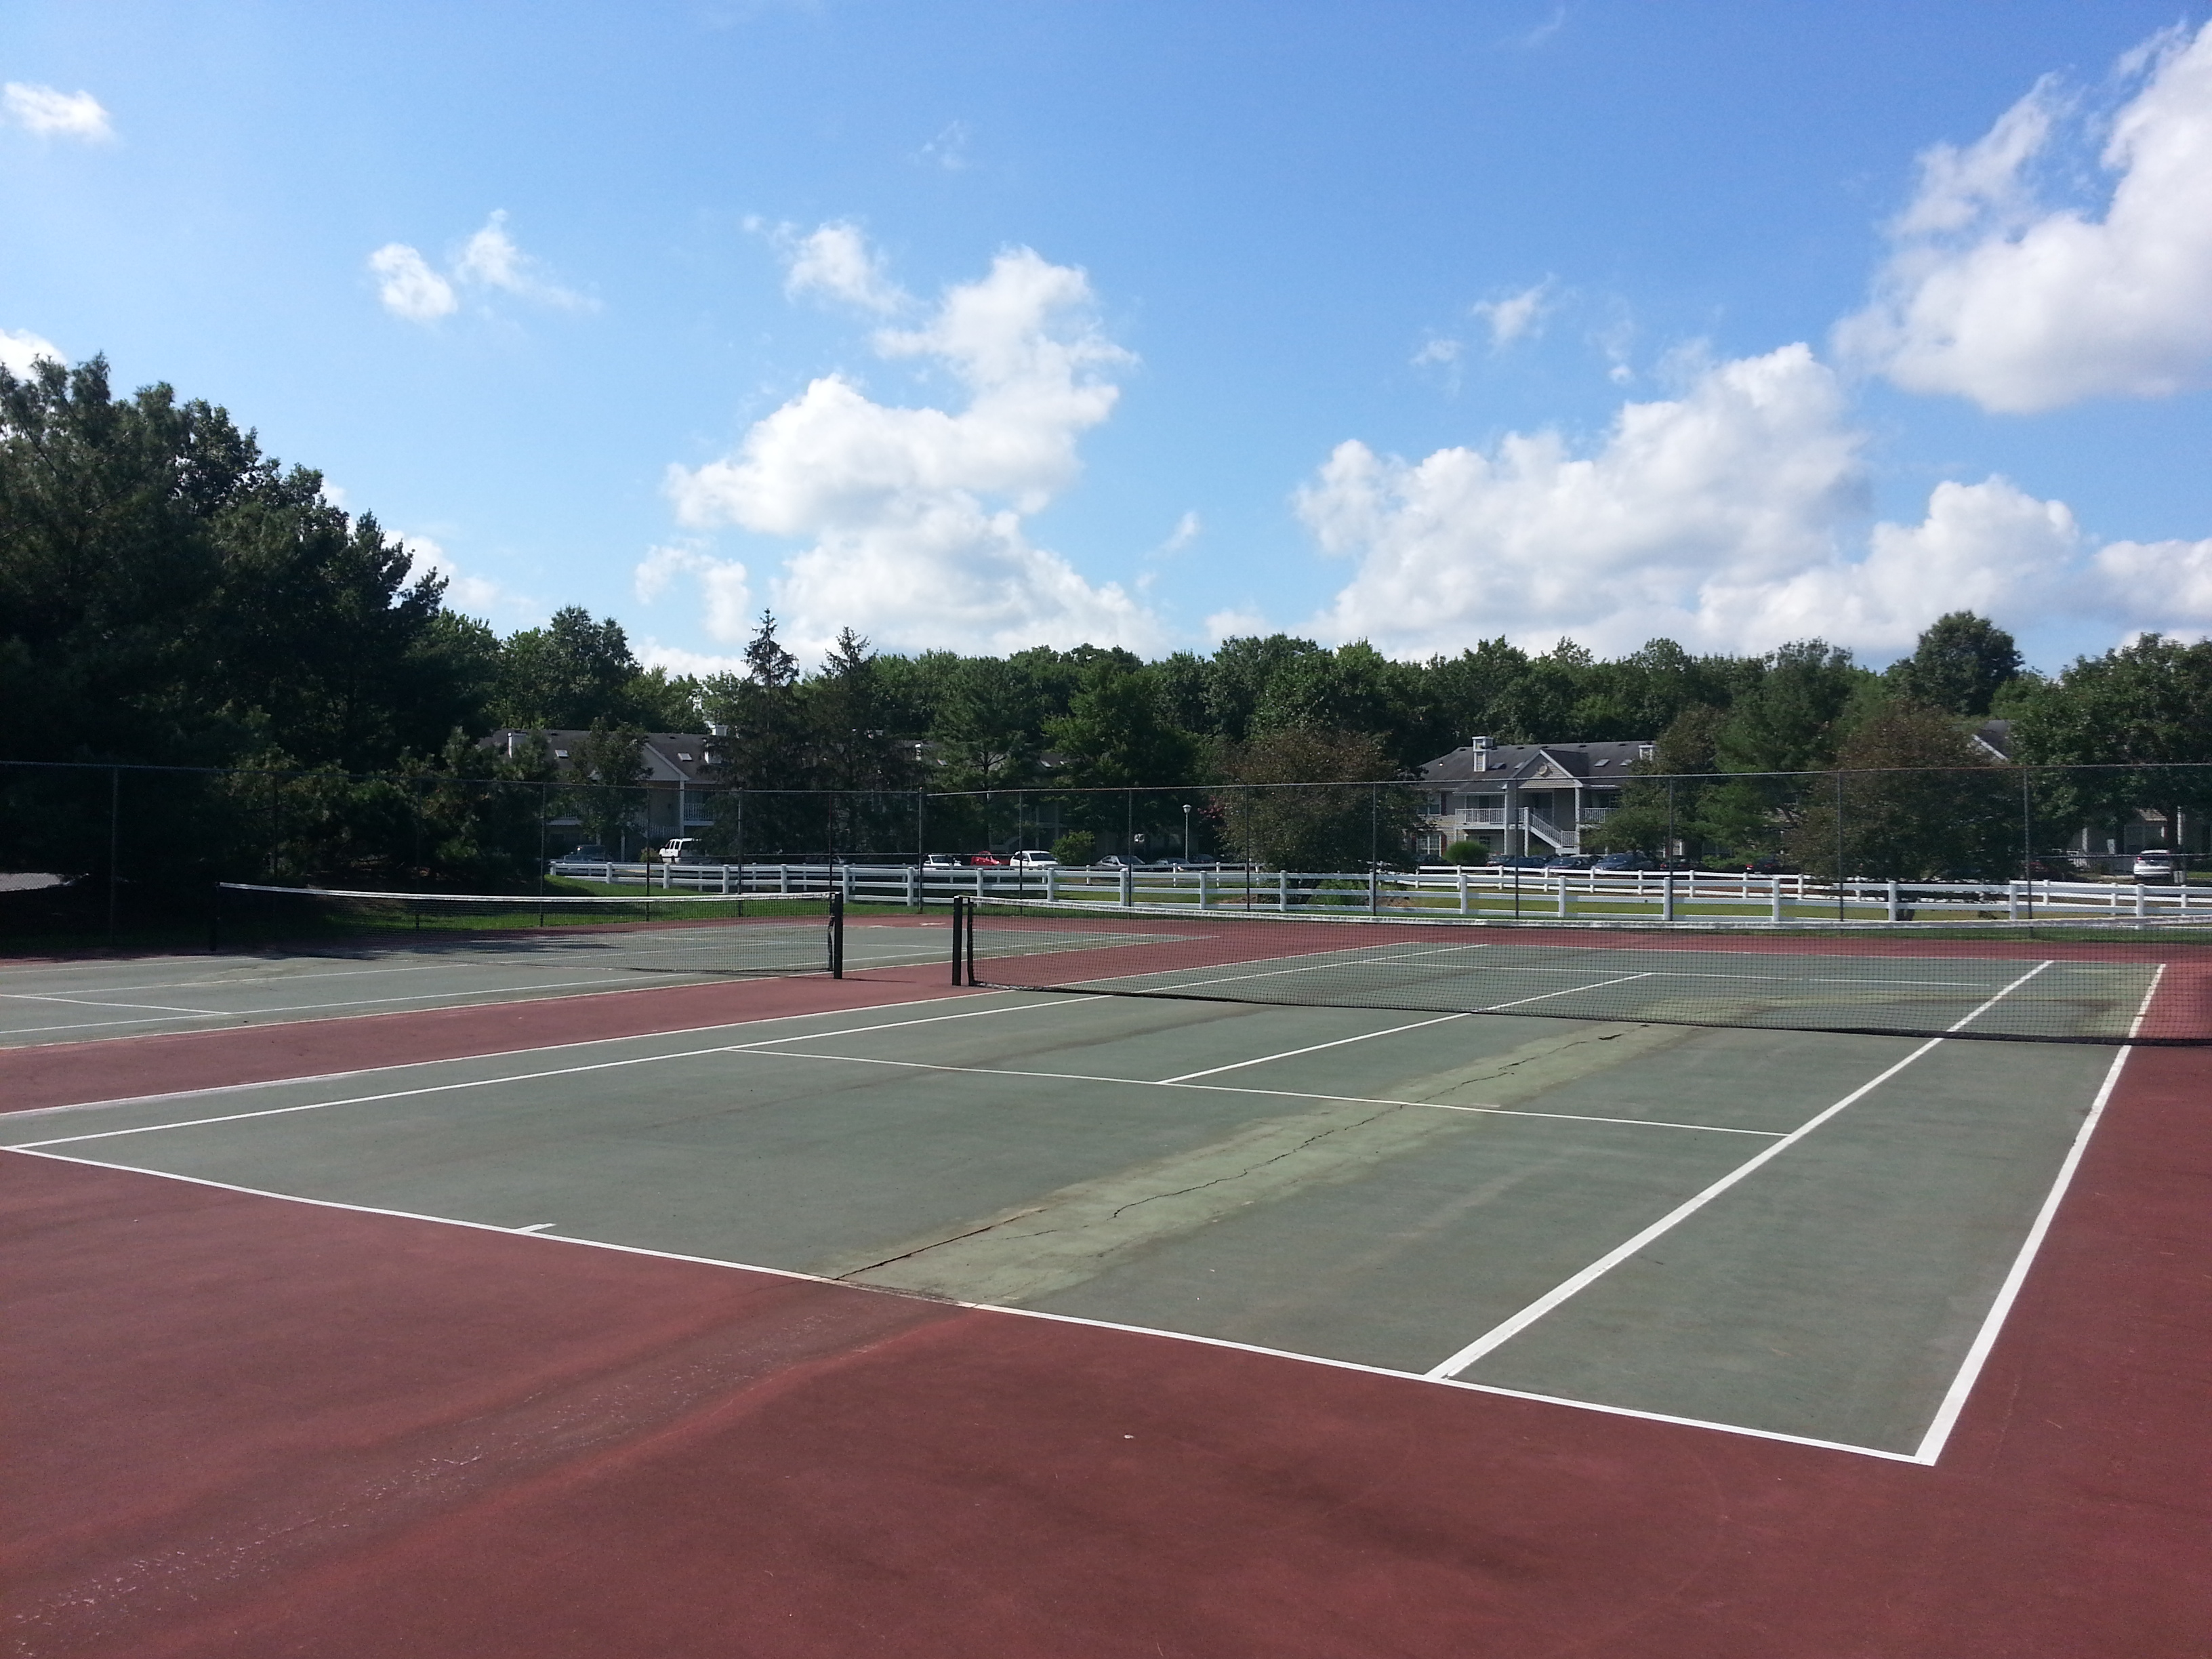 Society Hill at Tinton Falls has two tennis courts, pictured here, among the community amenities.